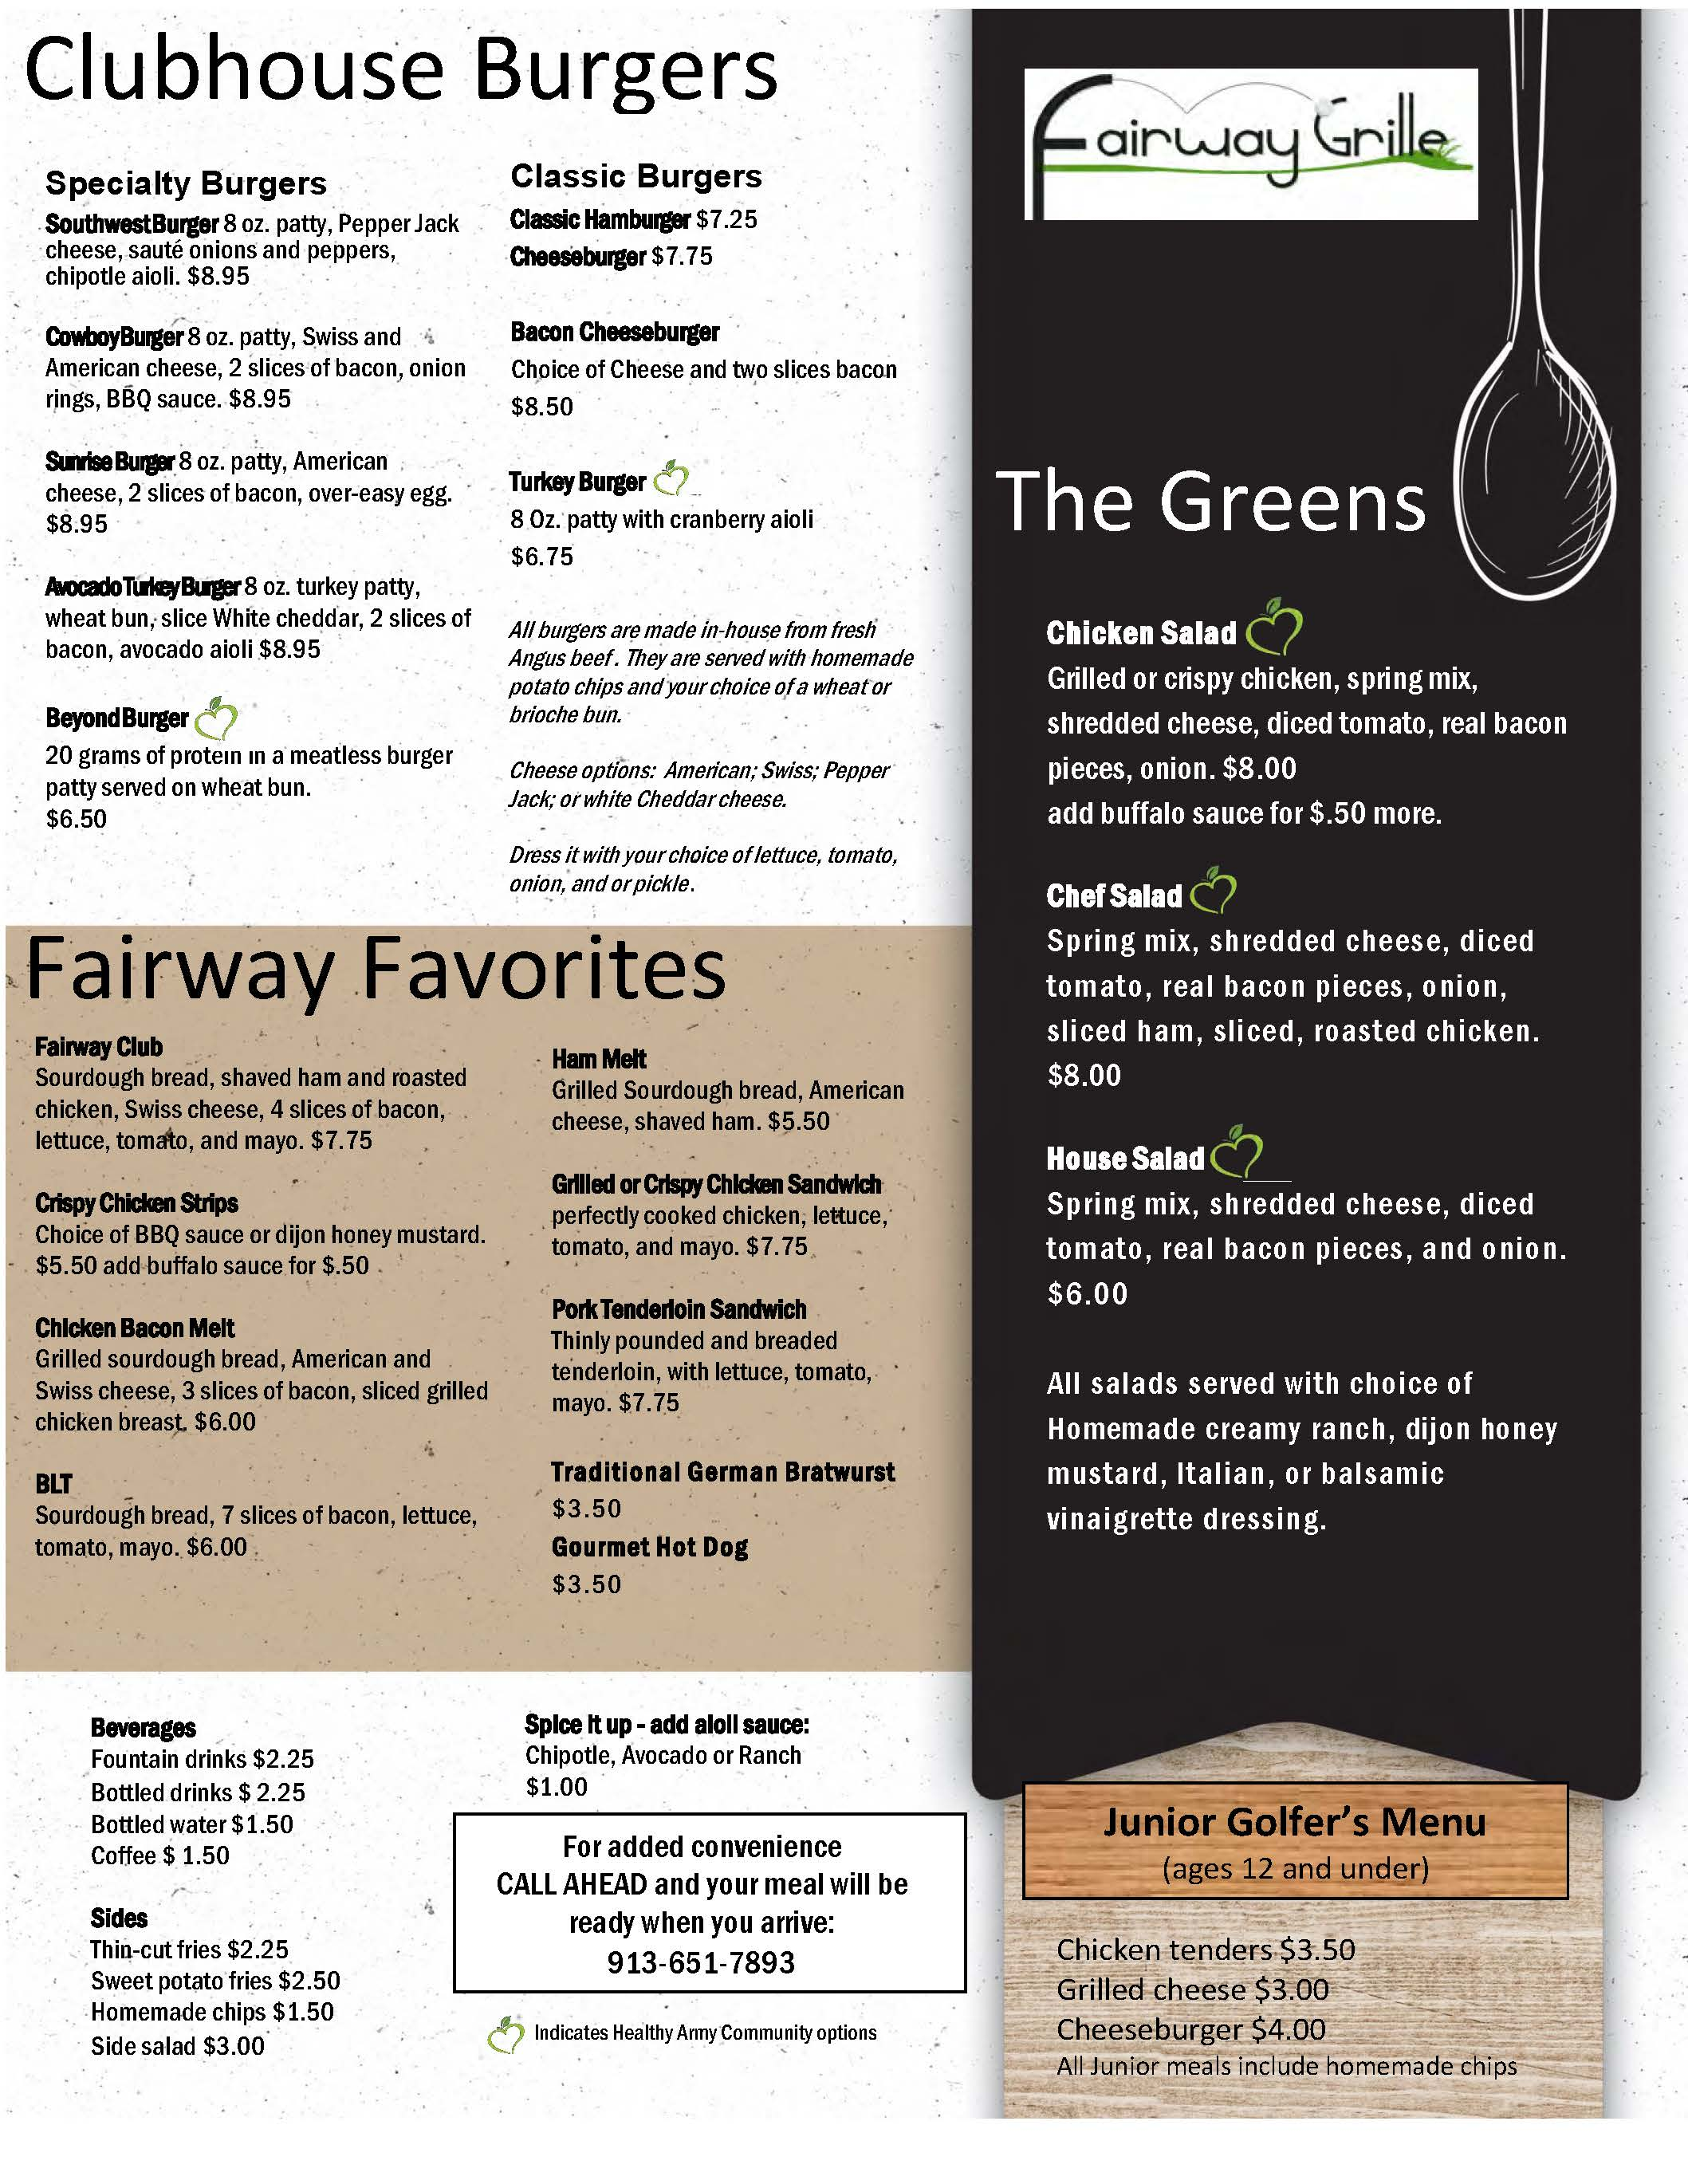 Fairway Menu (Clubhouse Burgers) Oct 20.jpg